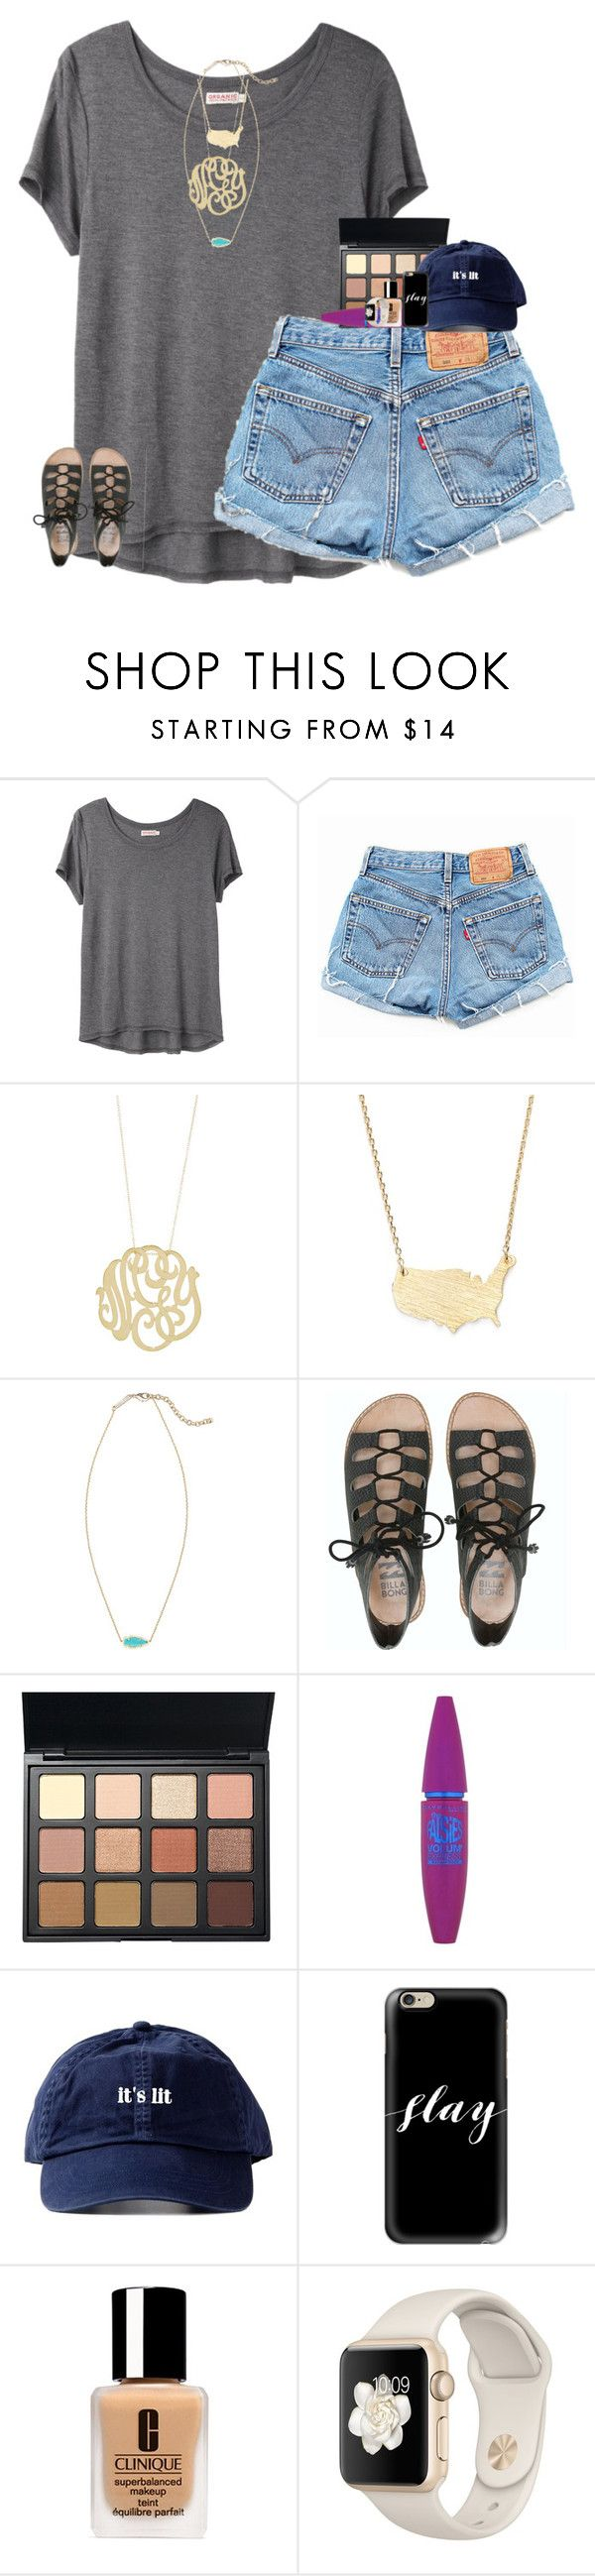 """""""it's lit"""" by evieleet ❤ liked on Polyvore featuring Organic by John Patrick, Levi's, Ginette NY, Moon and Lola, Kendra Scott, Billabong, Morphe, Maybelline, Casetify and Clinique"""